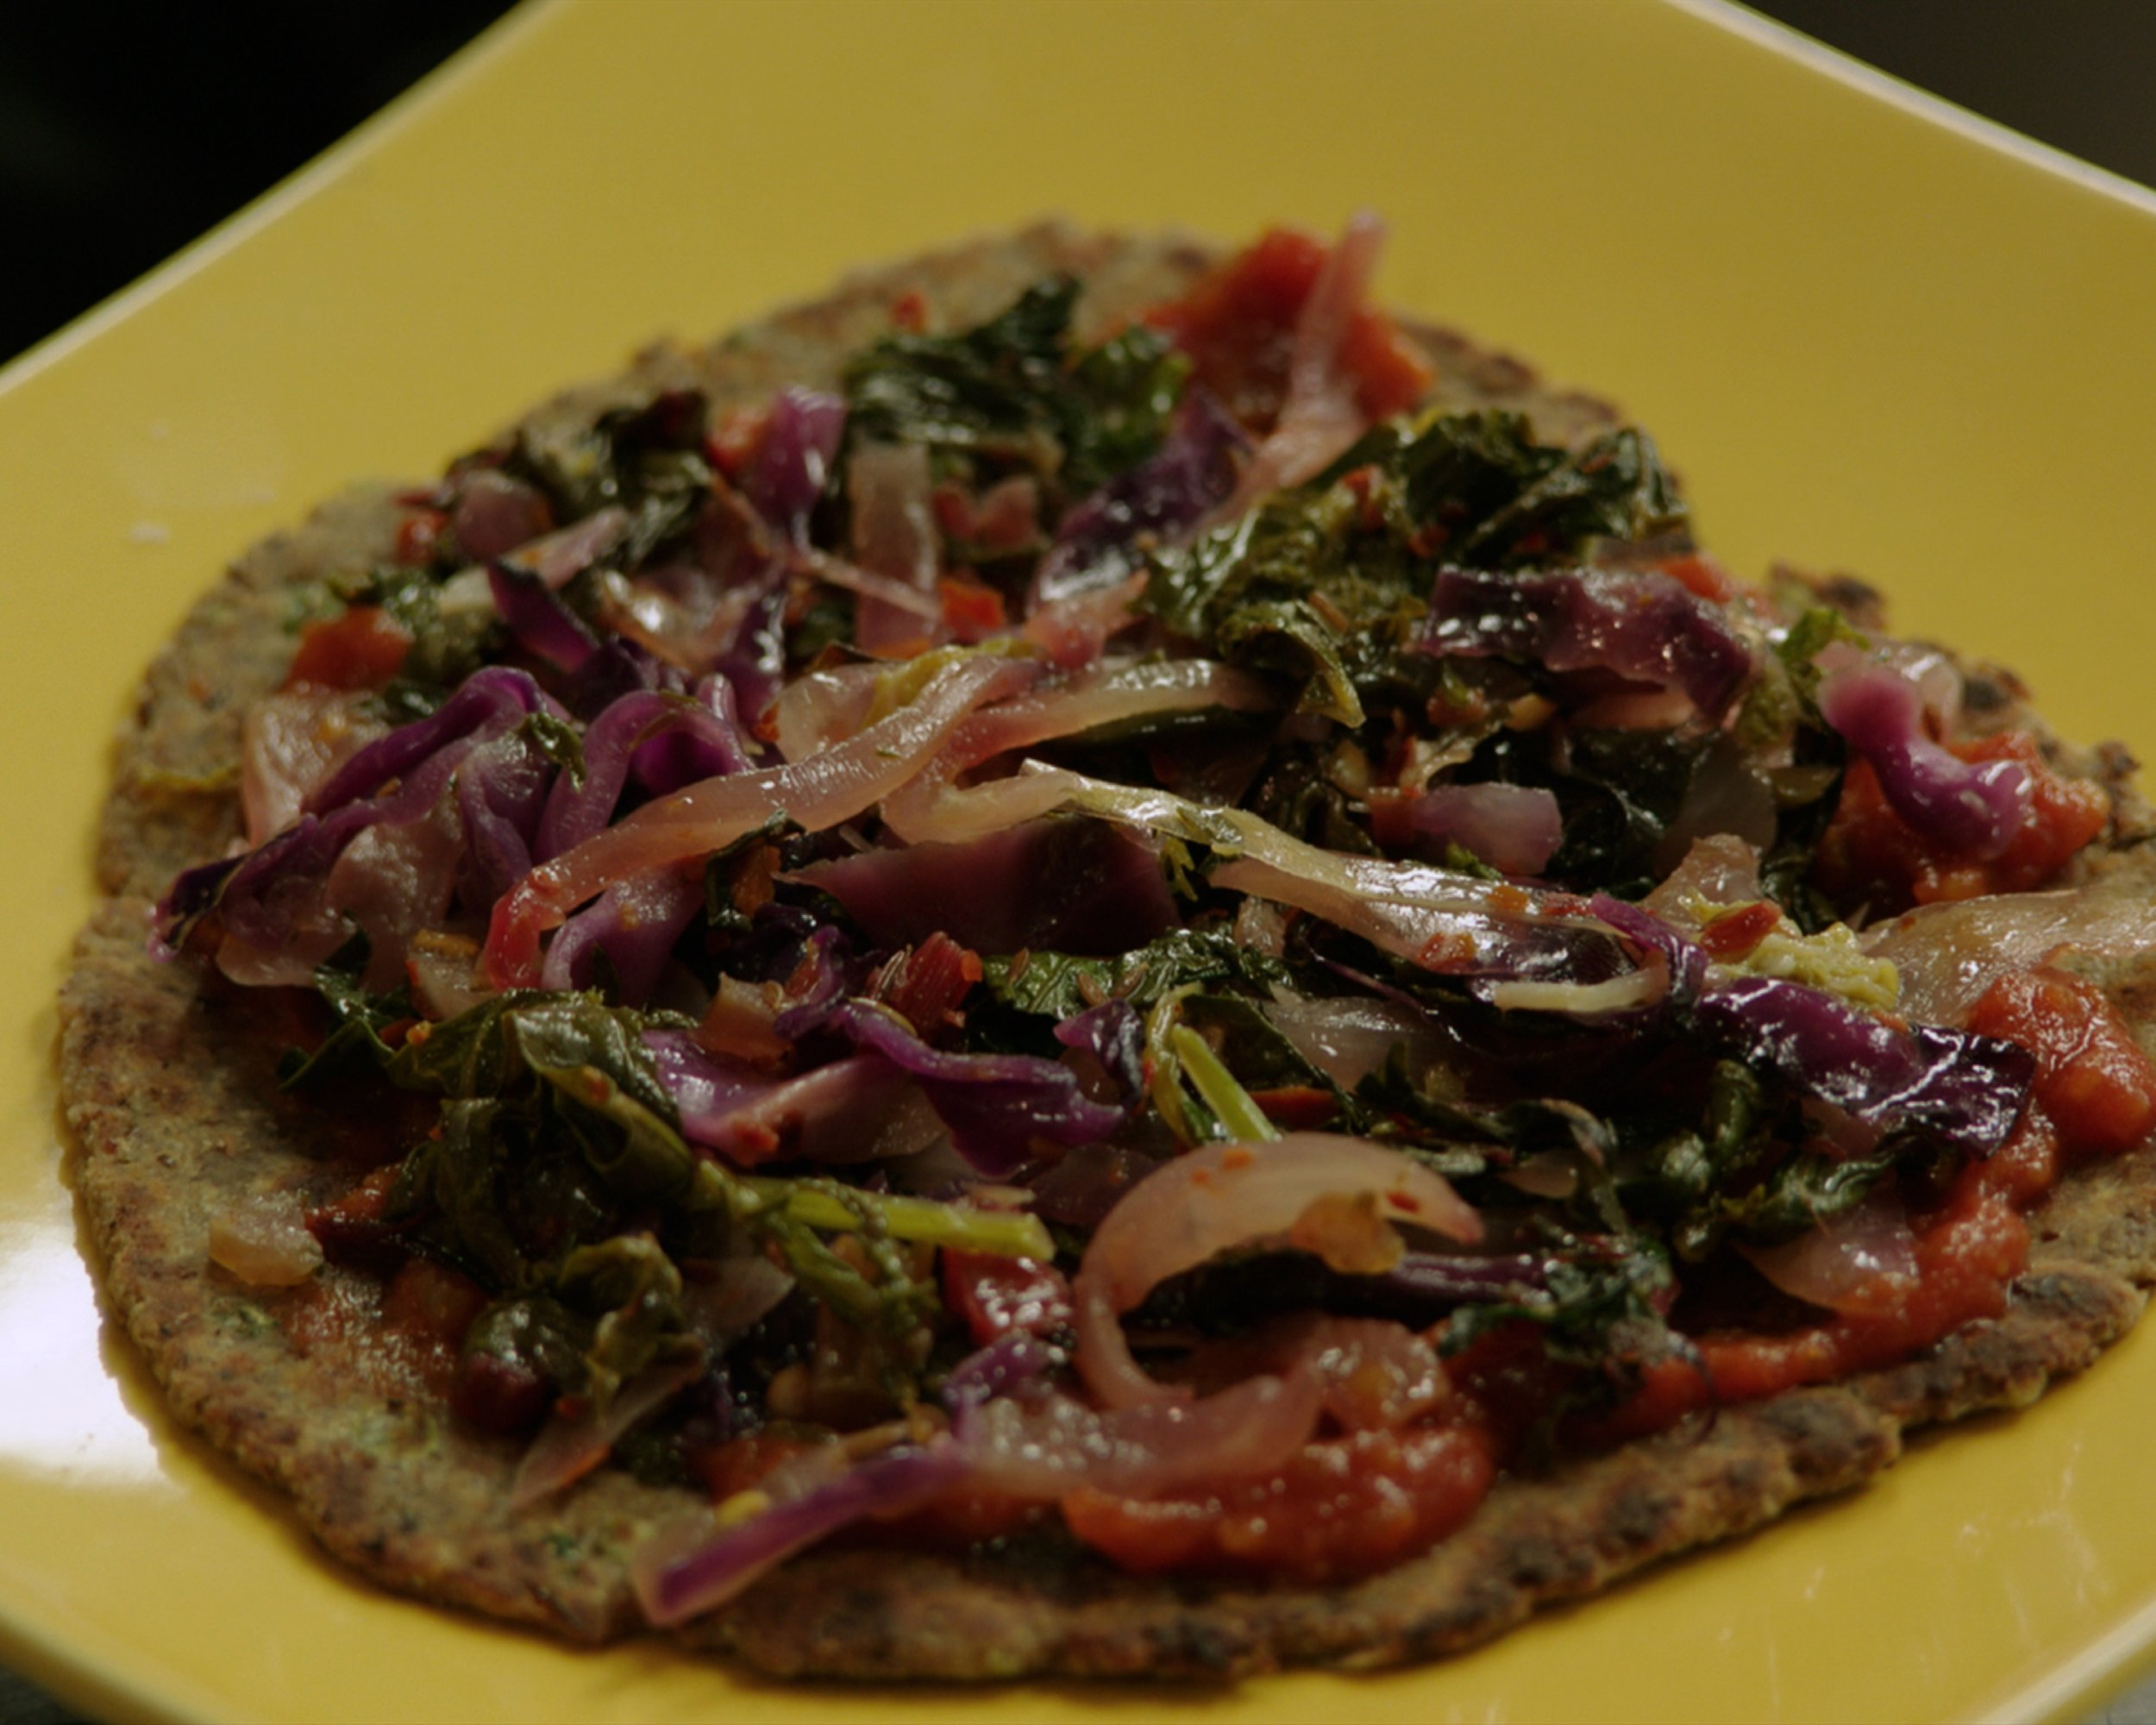 Bugs on the Menu 06 - Meeru Dhalwala's cricket paratha bread is one of her famed dishes made with roasted cricket powder.jpg